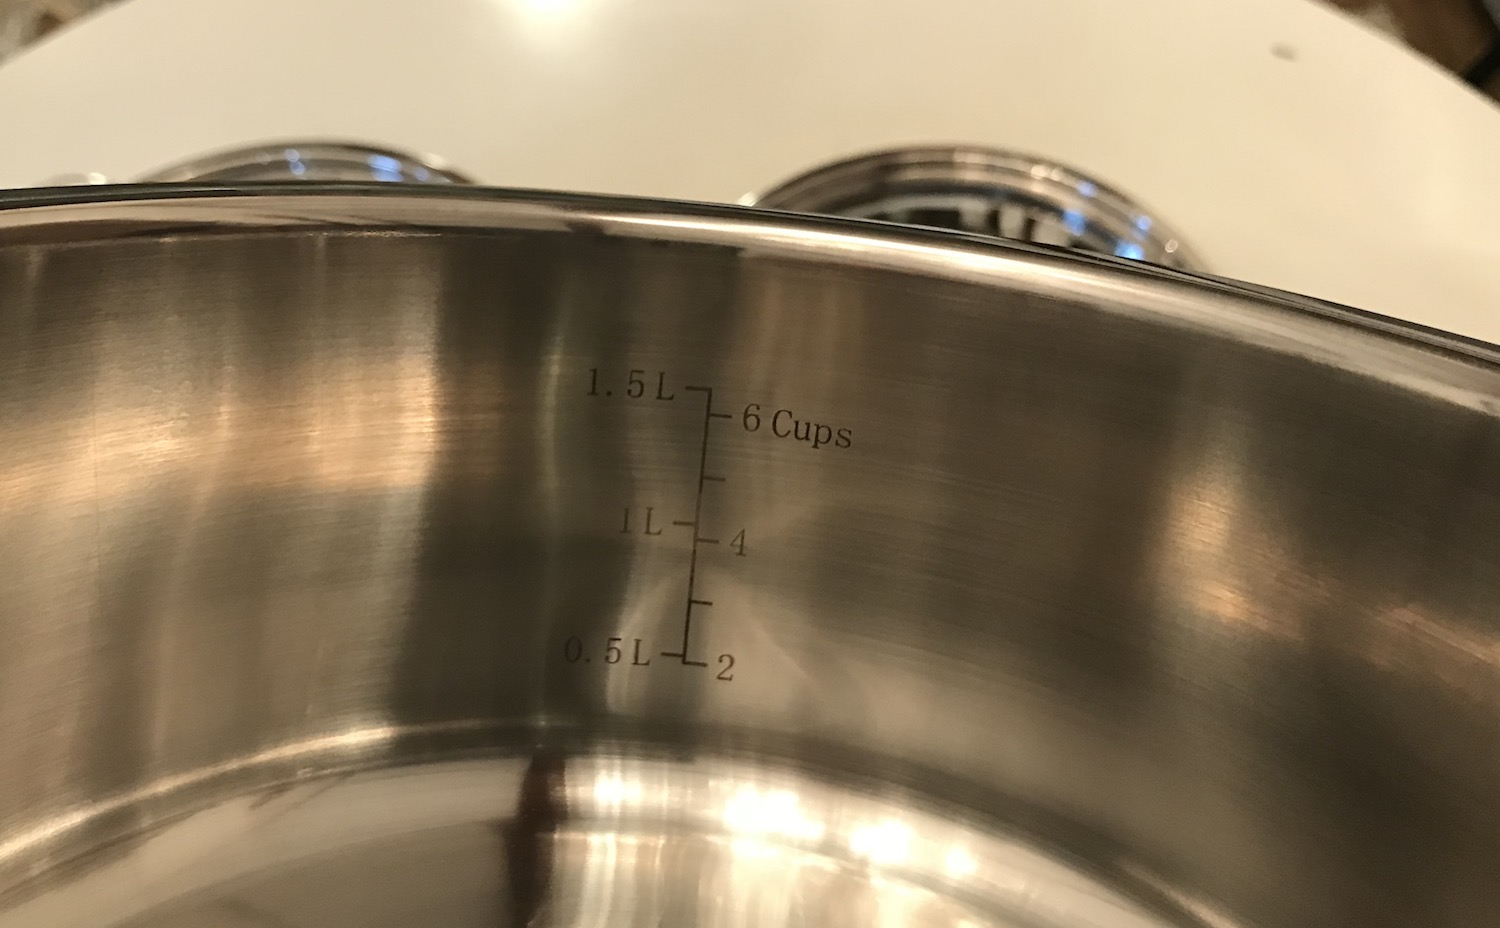 Cuisinart meauring label pots and pans